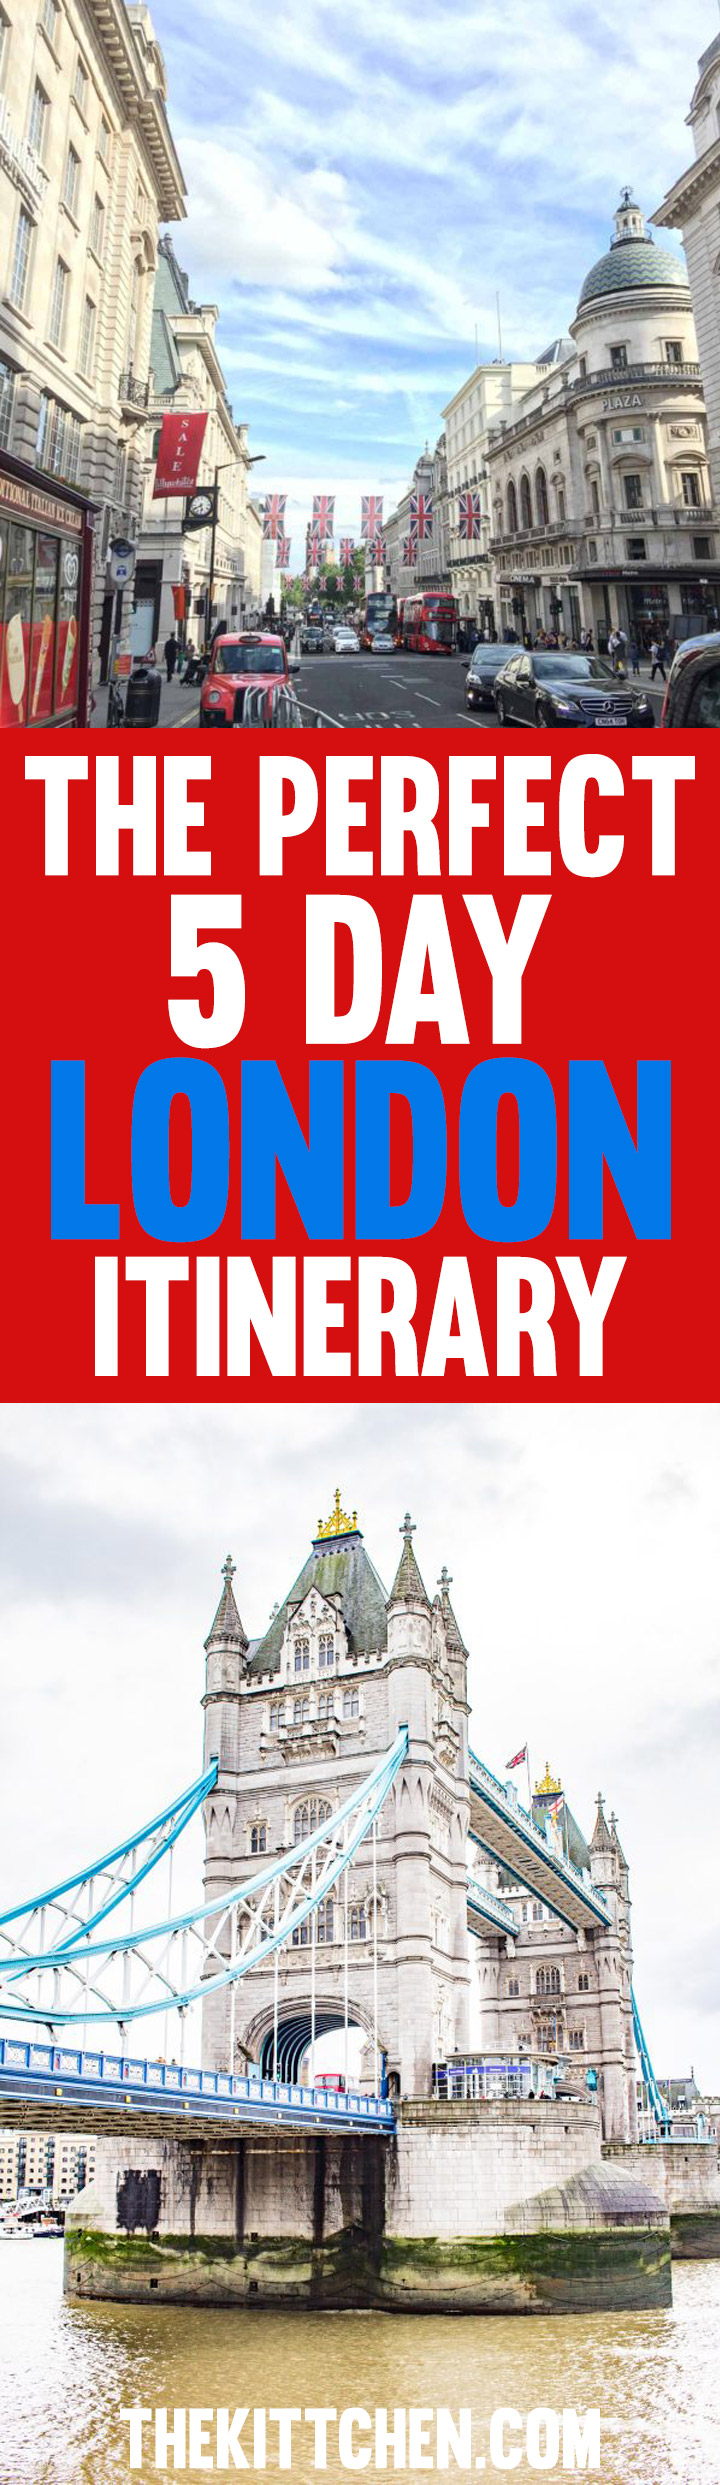 5 Day London Itinerary - To make this itinerary, I picked the very best things to do and see and then organized them into a 5-day itinerary that makes sense logistically.